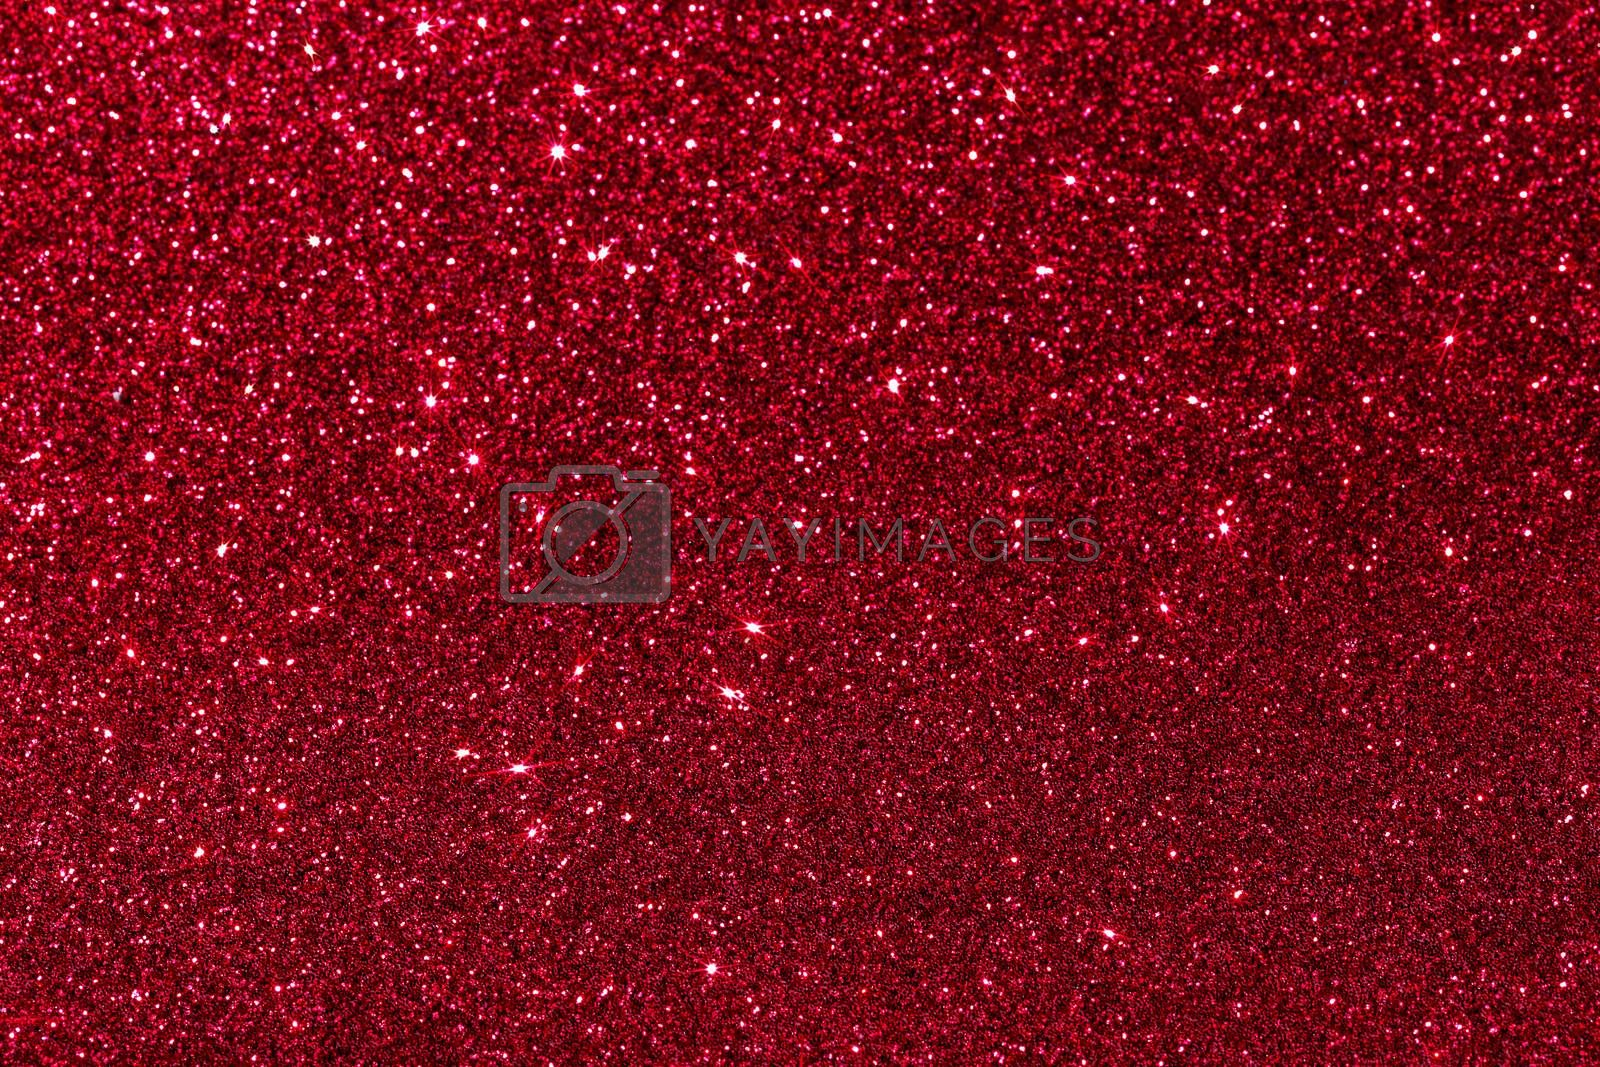 Red glitter texture holidays background. Macro shot